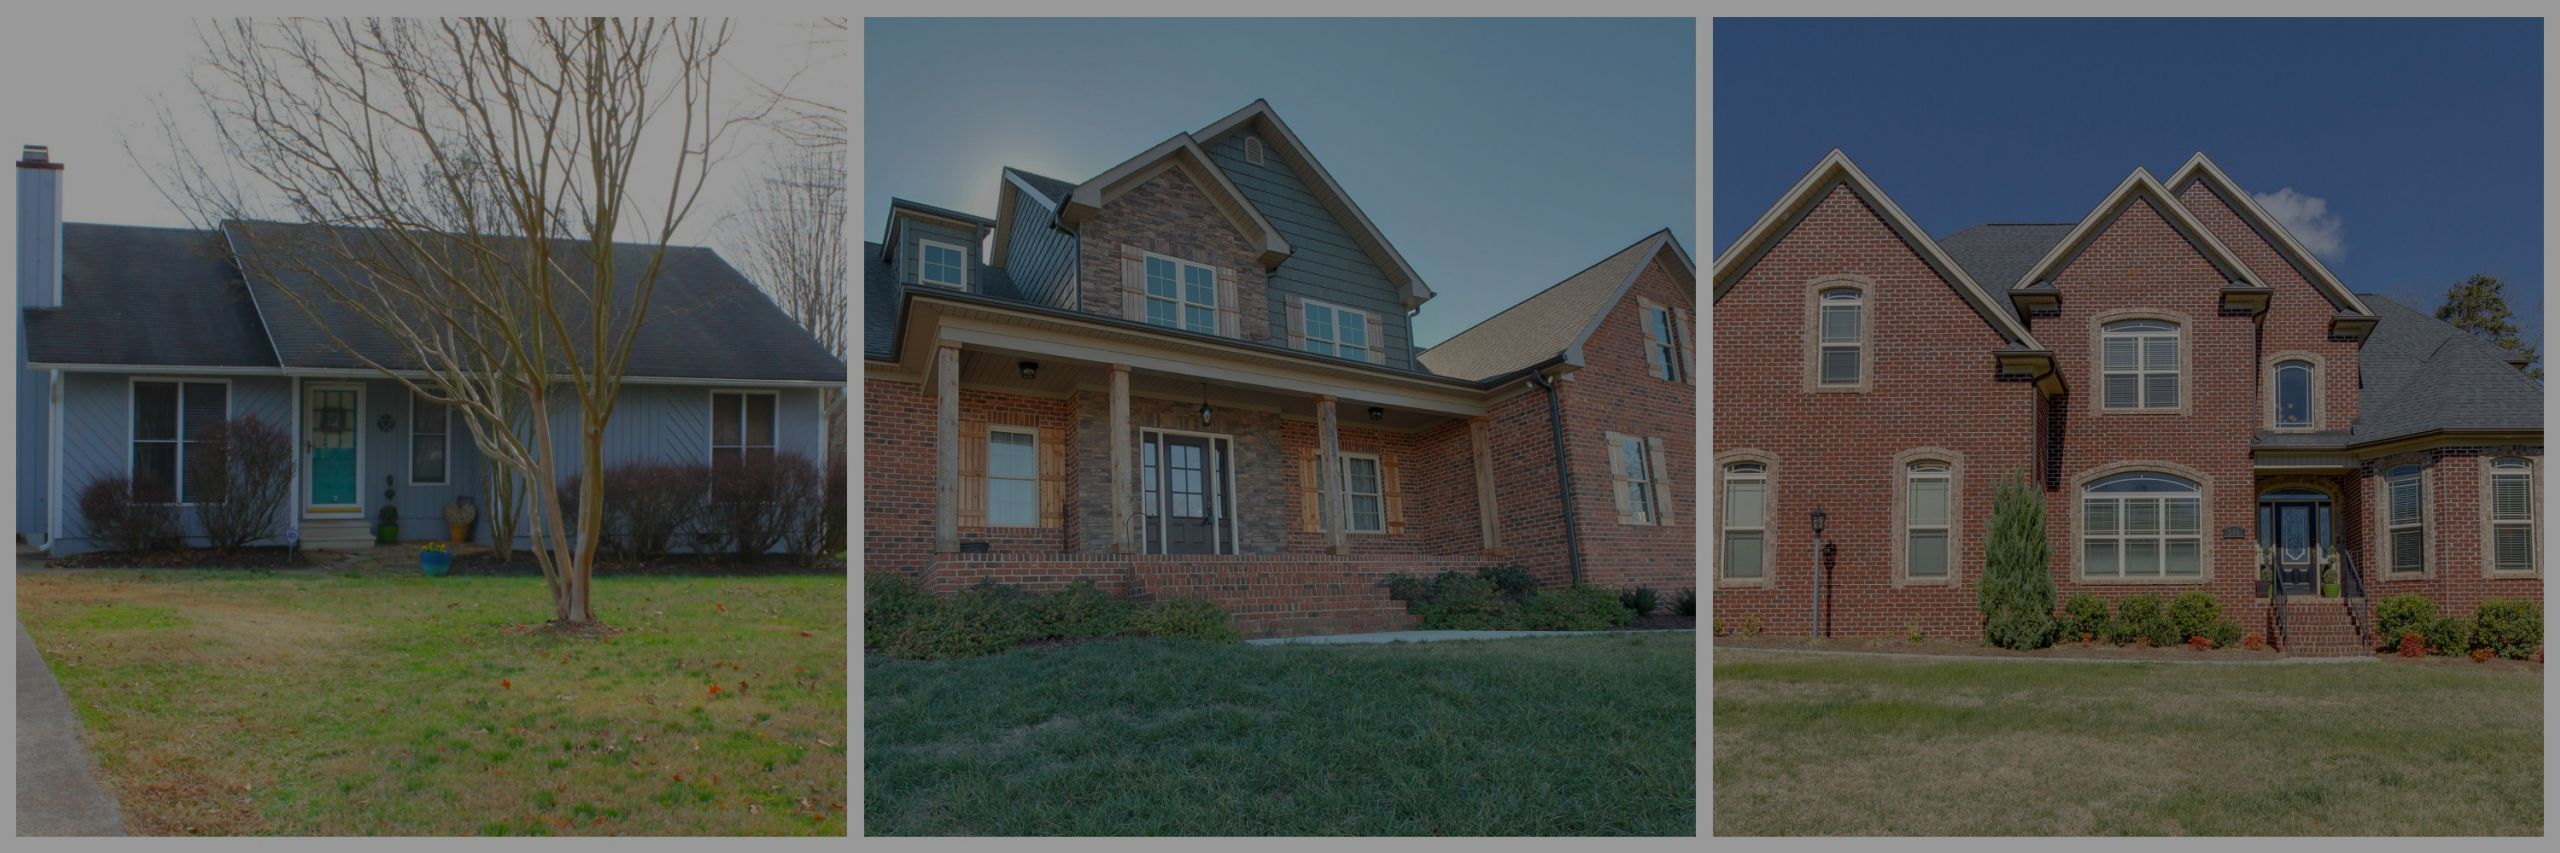 OPEN HOUSES SUNDAY 2-4PM